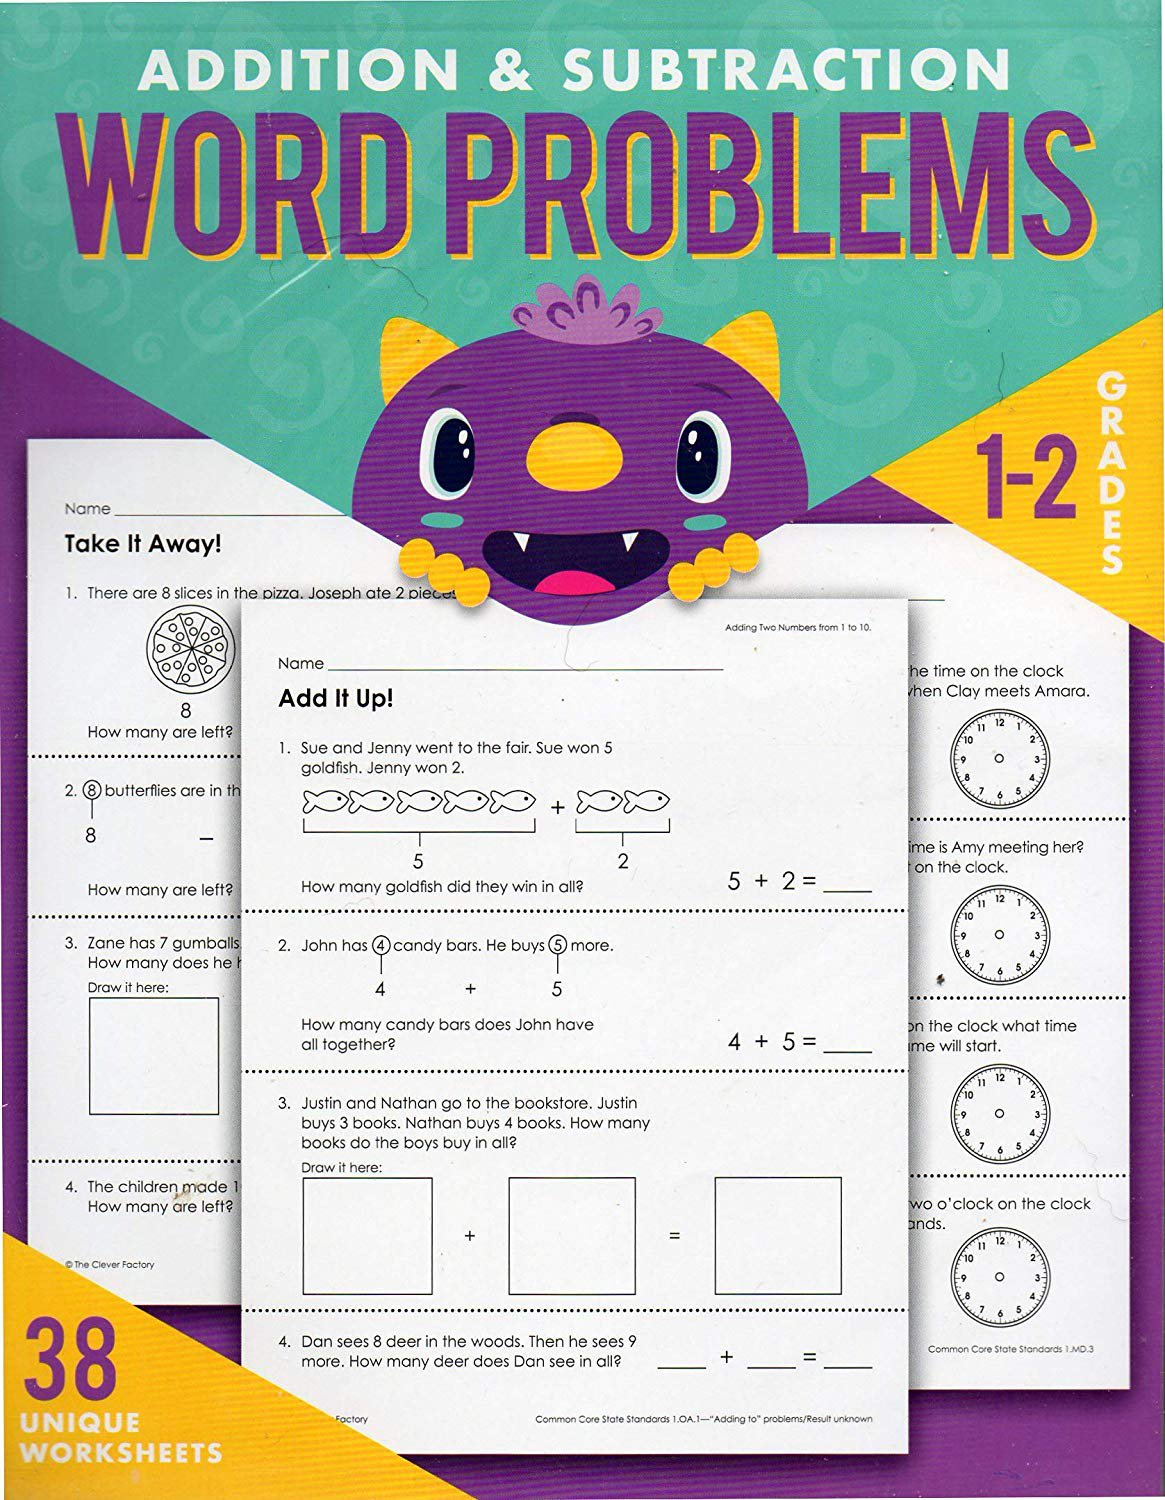 Teaching Tree Addition and Subtraction Word Problems Reproducible - Grades 1-2 -v3